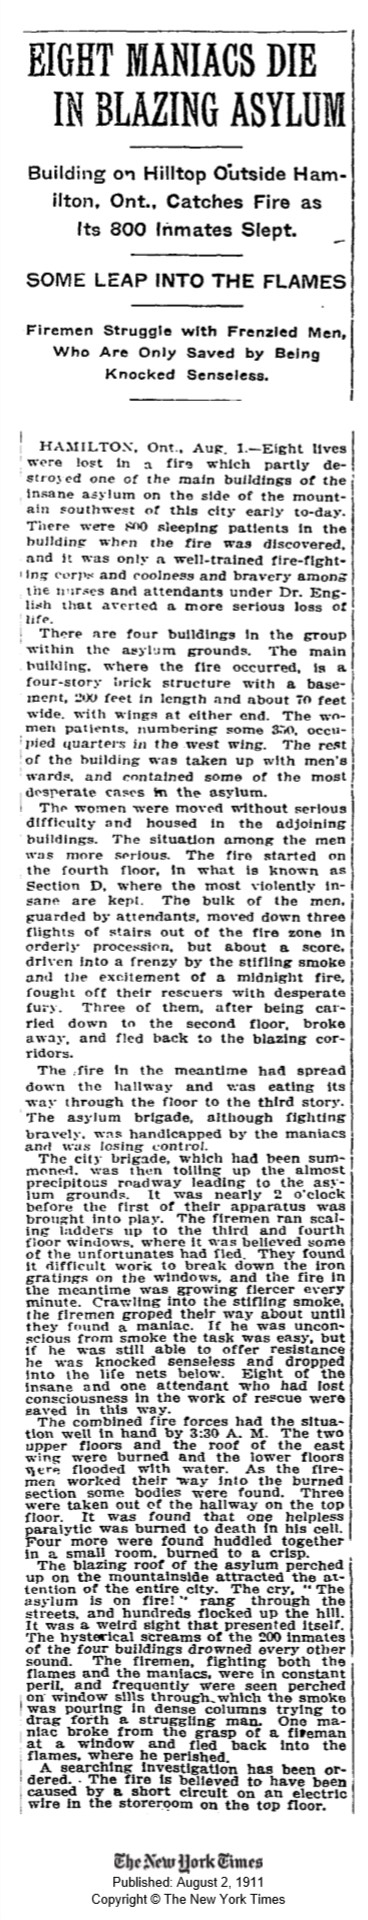 New York Times article on the fire. August 2, 1911